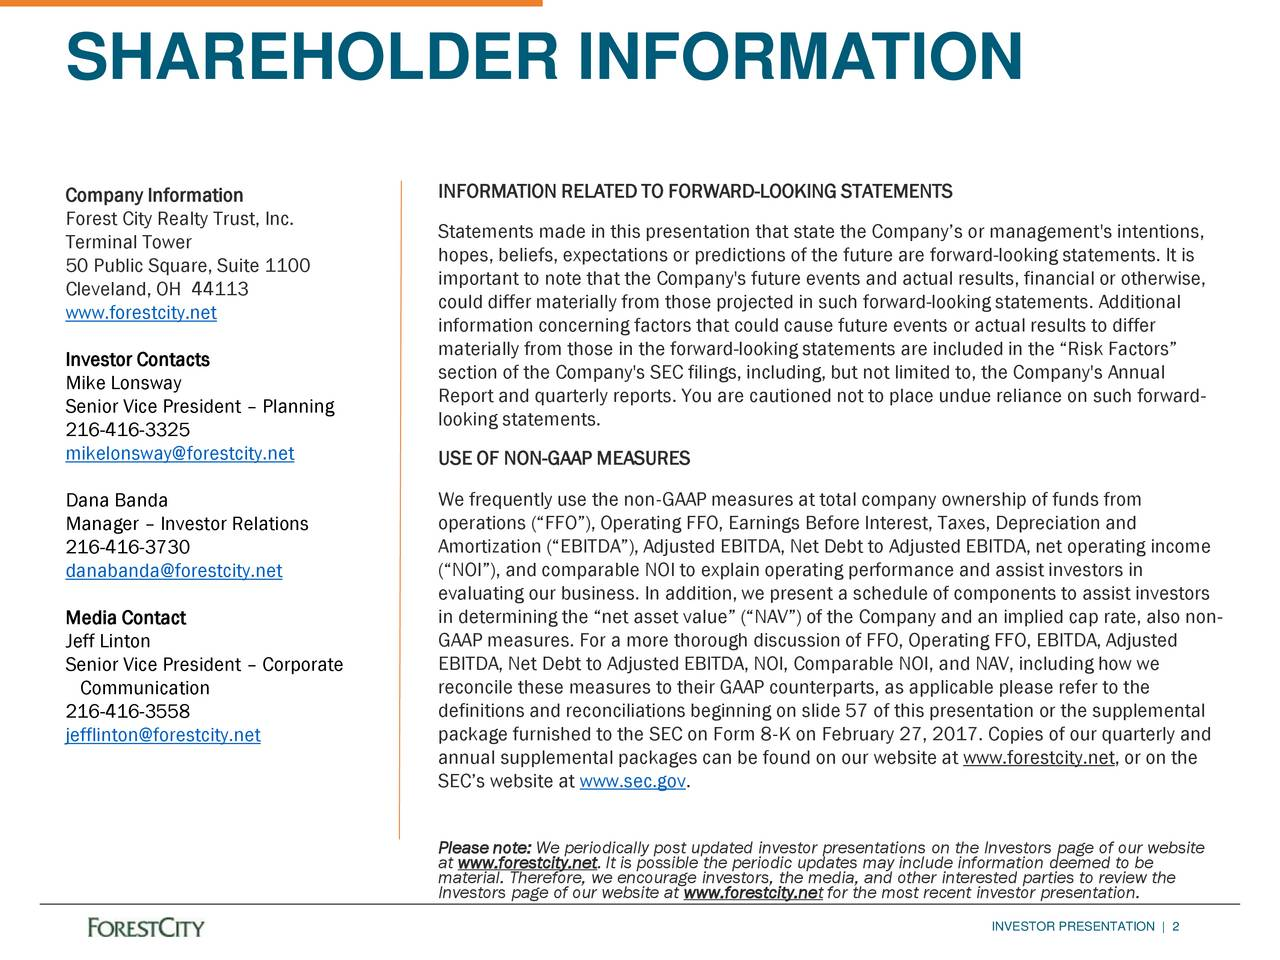 Company Information INFORMATION RELATED TO FORWARD-LOOKING STATEMENTS Forest City Realty Trust, Inc. Terminal Tower Statements made in this presentation that state the Companys or management's intentions, hopes, beliefs, expectations or predictions of the future are forward-looking statements. It is 50 Public Square, Suite 1100 important to note that the Company's future events and actual results, financial or otherwise, Cleveland, OH 44113 could differ materially from those projected in such forward-looking statements. Additional www.forestcity.net information concerning factors that could cause future events or actual results to differ Investor Contacts materially from those in the forward-looking statements are included in the Risk Factors Mike Lonsway section of the Company's SEC filings, including, but not limited to, the Company's Annual Report and quarterly reports. You are cautioned not to place undue reliance on such forward- Senior Vice President  Planning looking statements. 216-416-3325 mikelonsway@forestcity.net USE OF NON-GAAP MEASURES Dana Banda We frequently use the nonGAAP measures at total company ownership of funds from operations (FFO), Operating FFO, Earnings Before Interest, Taxes, Depreciation and Manager  Investor Relations 216-416-3730 Amortization (EBITDA), Adjusted EBITDA, Net Debt to Adjusted EBITDA, net operating income danabanda@forestcity.net (NOI), and comparable NOI to explain operating performance and assist investors in evaluating our business. In addition, we present a schedule of components to assist investors Media Contact in determining the net asset value (NAV) of the Company and an implied cap rate, also non- Jeff Linton GAAP measures. For a more thorough discussion of FFO, Operating FFO, EBITDA, Adjusted EBITDA, Net Debt to Adjusted EBITDA, NOI, Comparable NOI, and NAV, including how we Senior Vice President  Corporate Communication reconcile these measures to their GAAP counterparts, as applicable please refer to the 216-416-3558 definitions and reconciliations beginning on slide 57 of this presentation or the supplemental jefflinton@forestcity.net package furnished to the SEC on Form 8K on February 27, 2017. Copies of our quarterly and annual supplemental packages can be found on our website at www.forestcity.net, or on the SECs website at www.sec.gov. at www.forestcity.net. It is possible the periodic updates may include information deemed to beebsite material. Therefore, we encourage investors, the media, and other interested parties to review the Investors page of our website at www.forestcity.net for the most recent investor presentation. INVESTOR PRESENTATION | 2